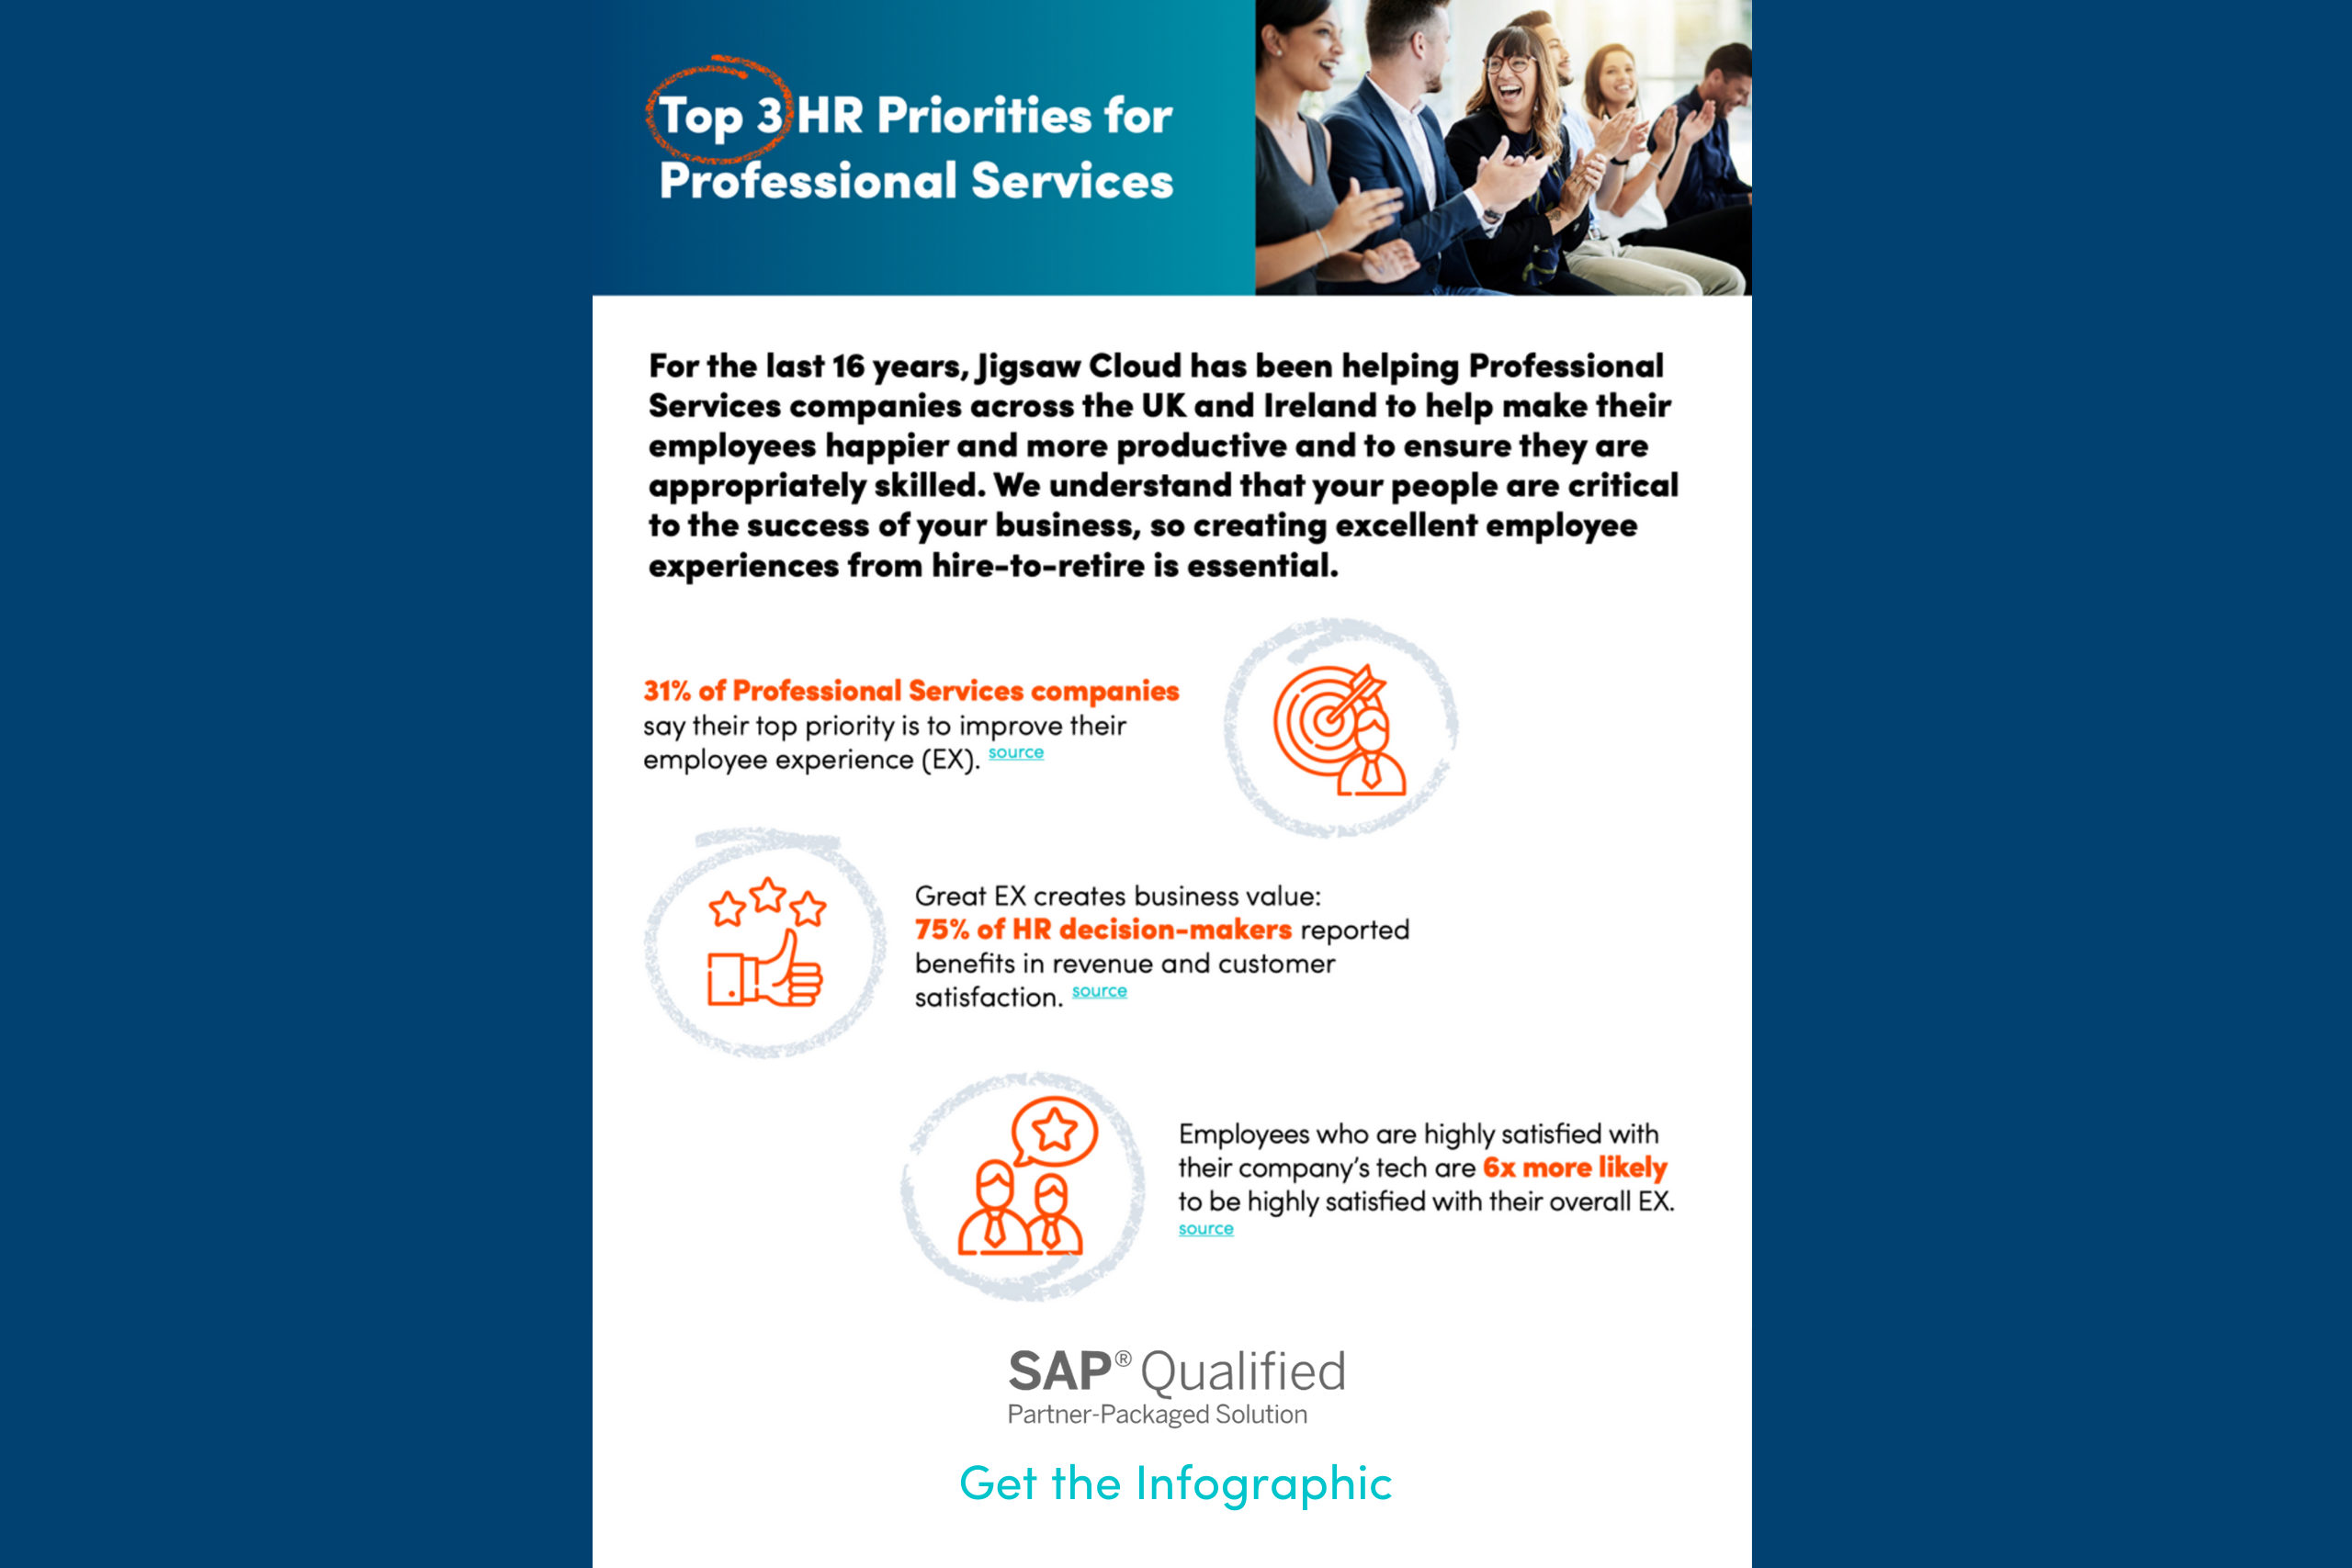 Smart Start Professional Services Infographic from Jigsaw Cloud